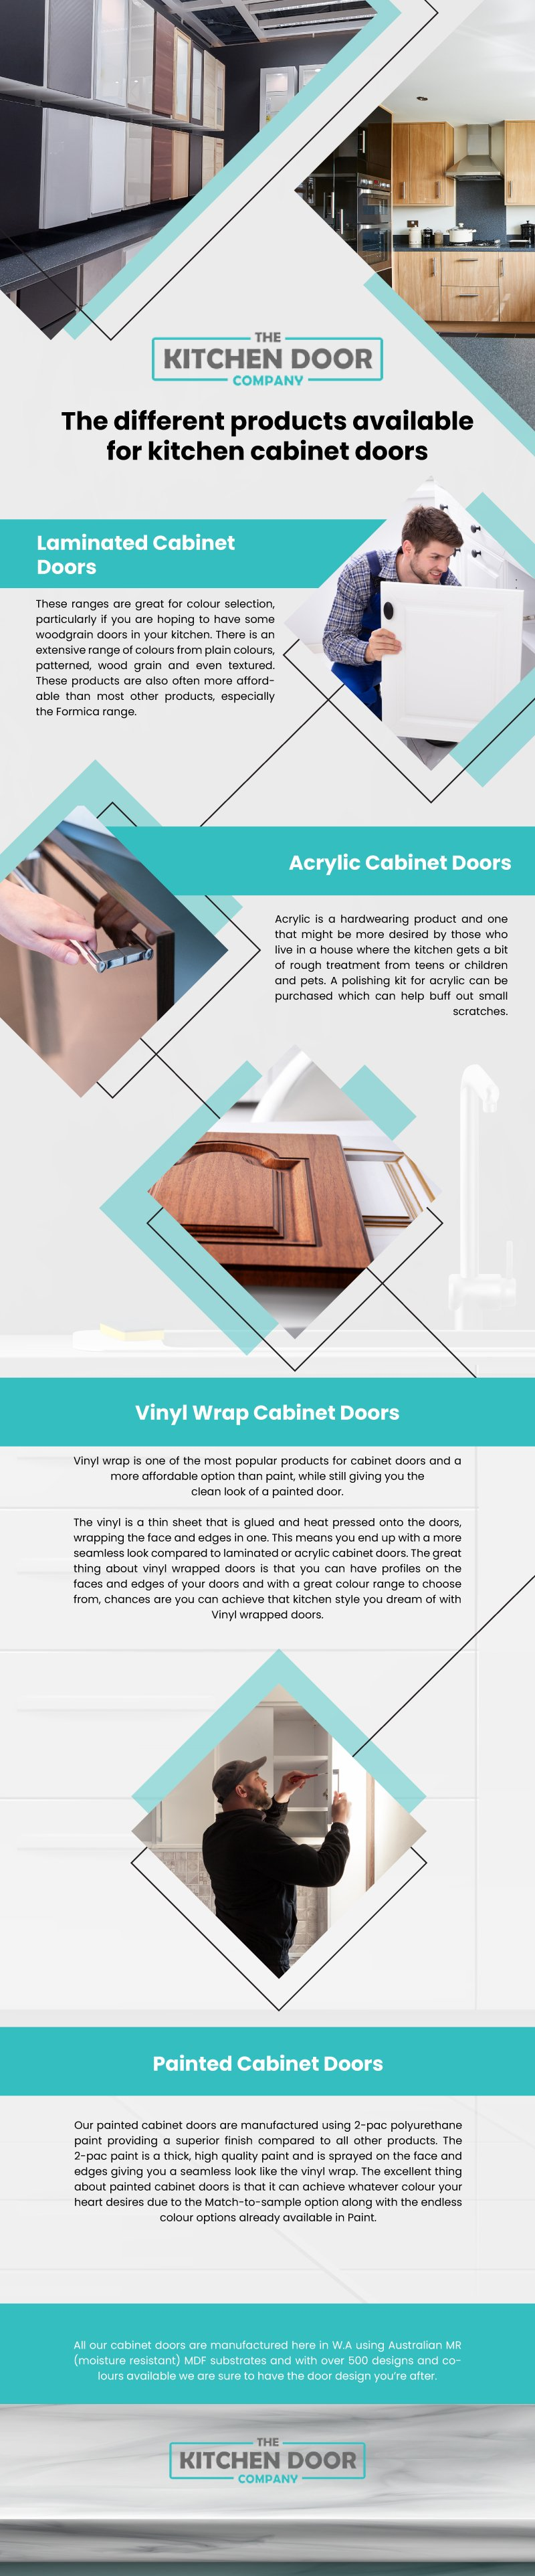 Different Products Available for Kitchen Cabinet Doors